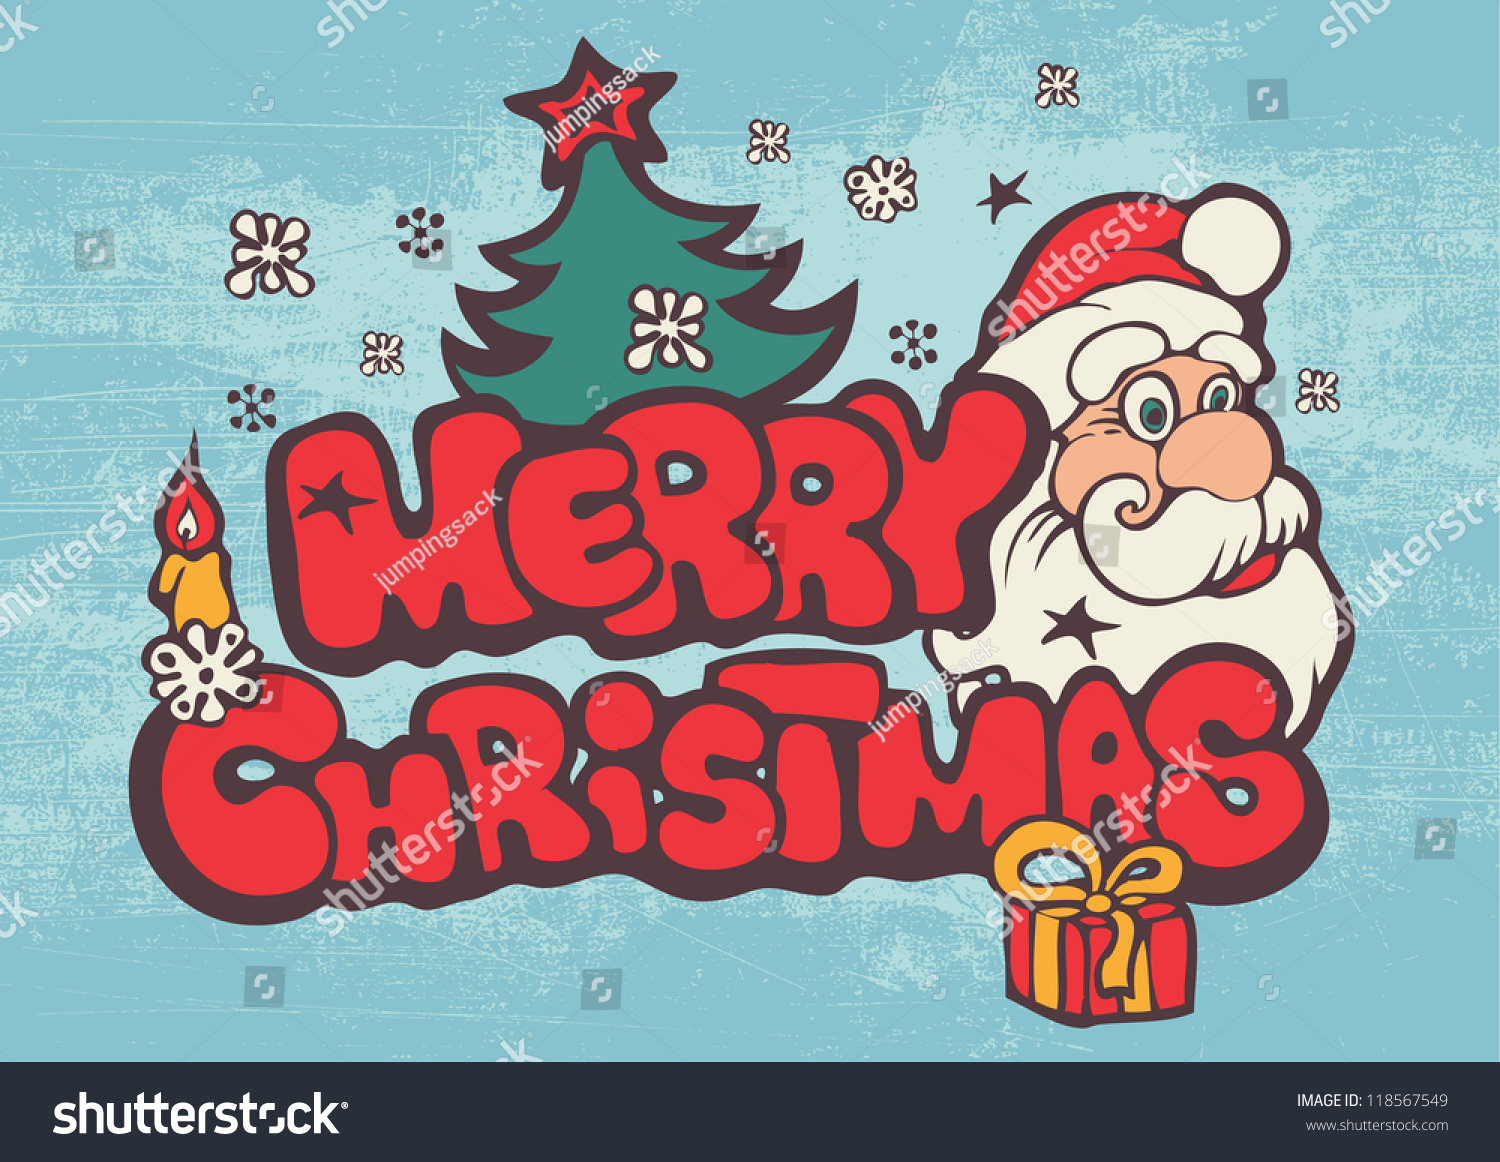 Greeting christmas card funny santa words stock vector 118567549 greeting christmas card with funny santa and words merry christmas color vector illustration kristyandbryce Choice Image